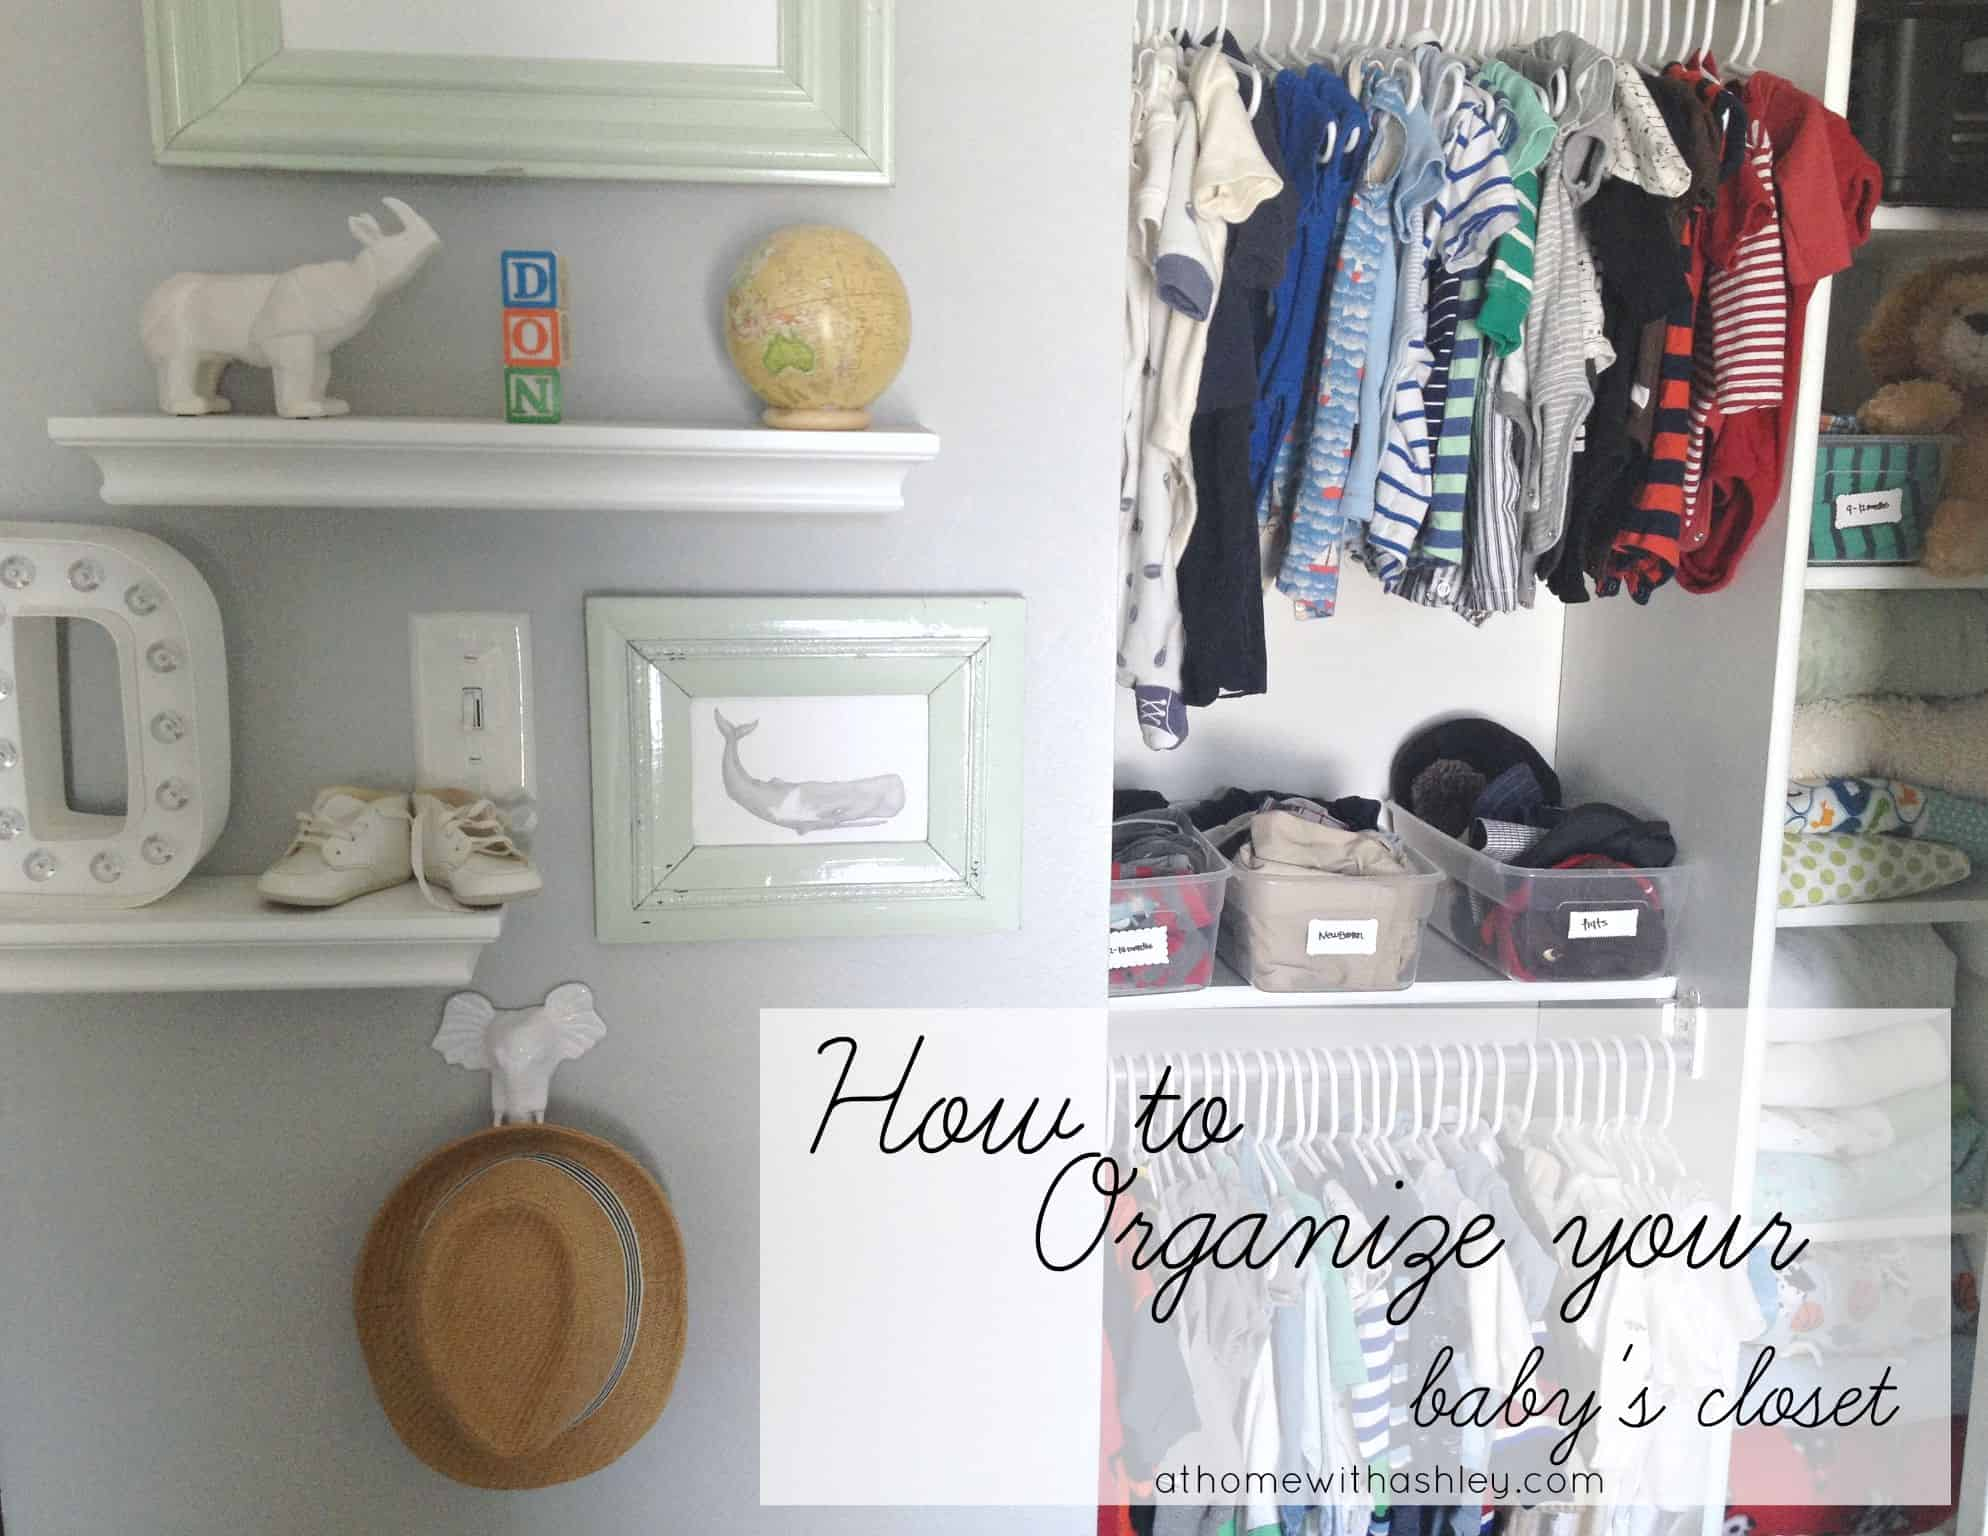 The Best Way To Organize Your Baby S Closet At Home With